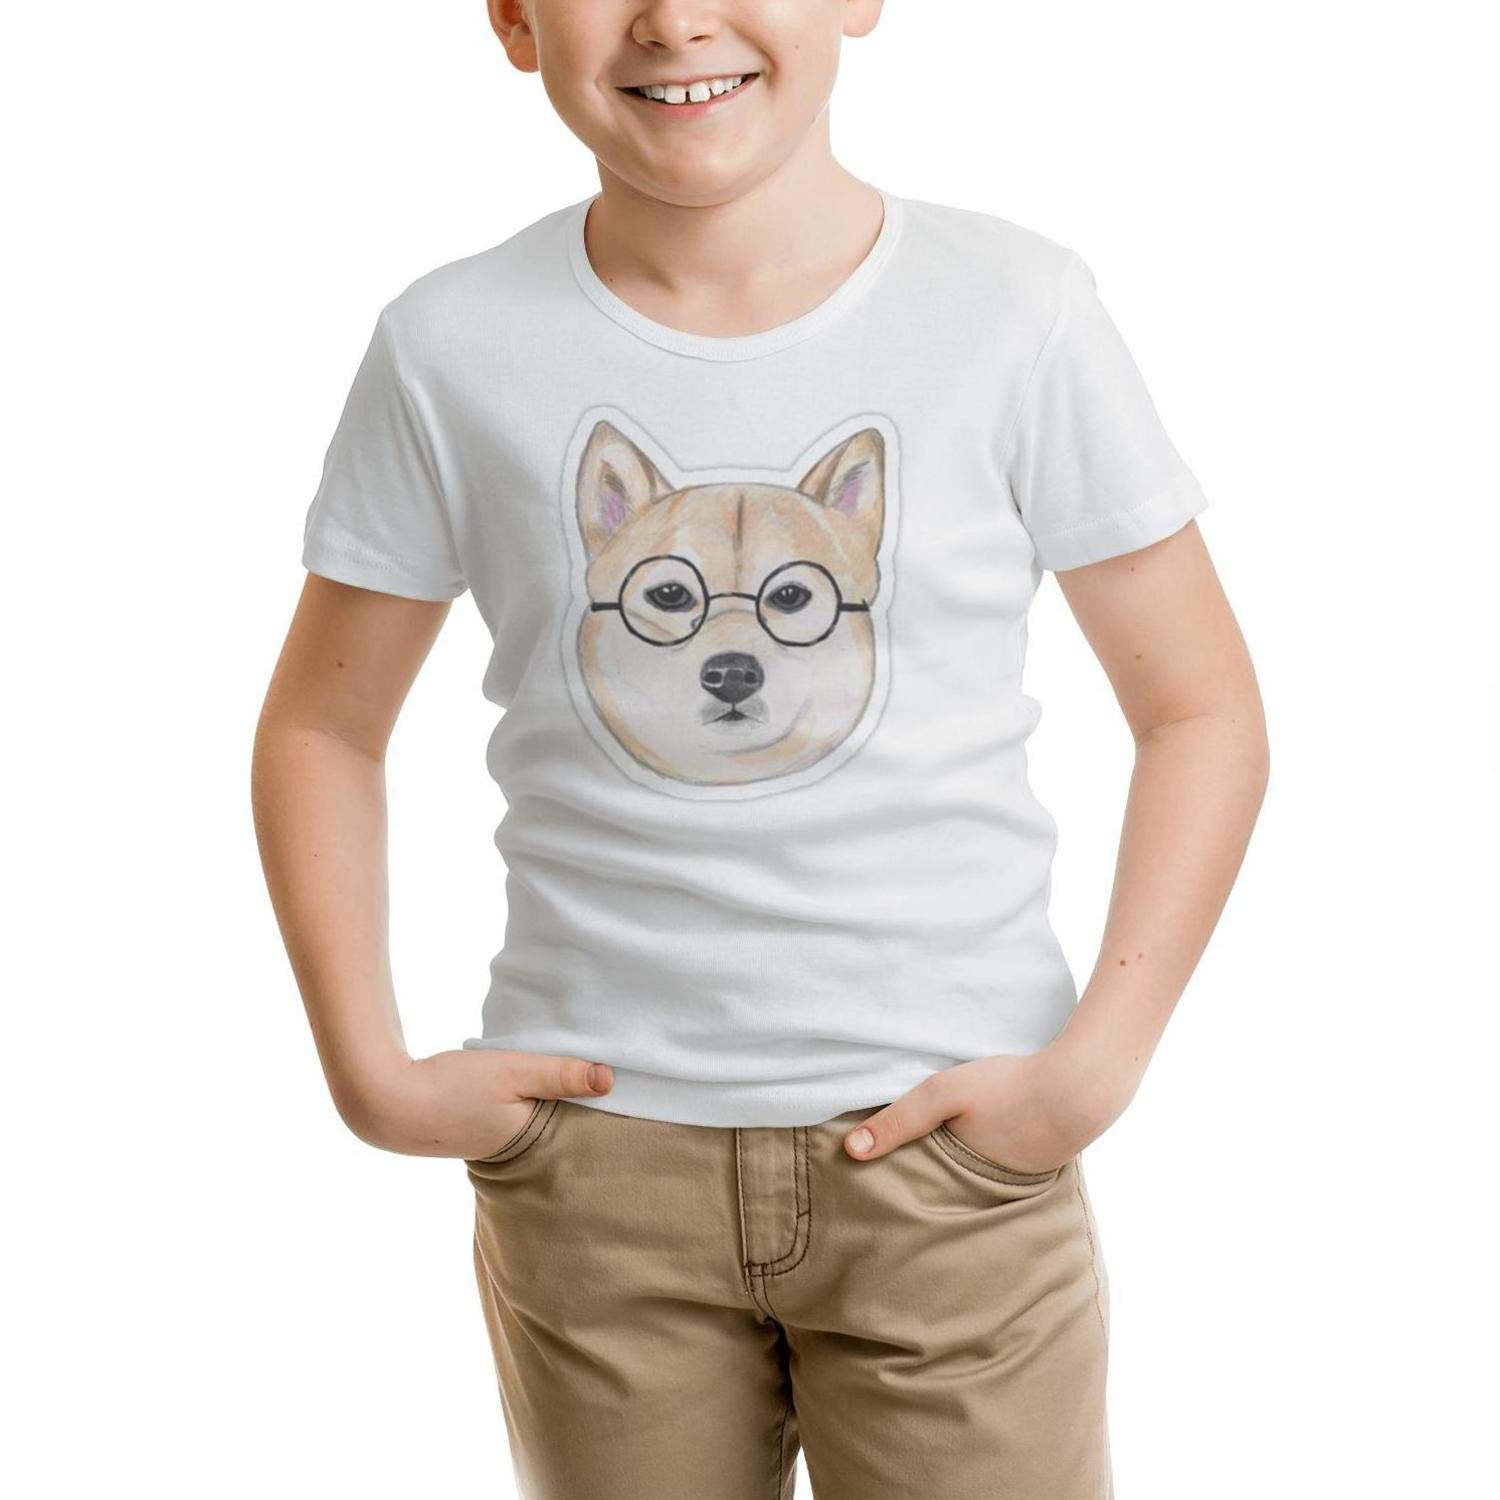 GGTHT Toddlers White t Shirt Doge Face Glasses O-Neck Short Sleeve Cotton